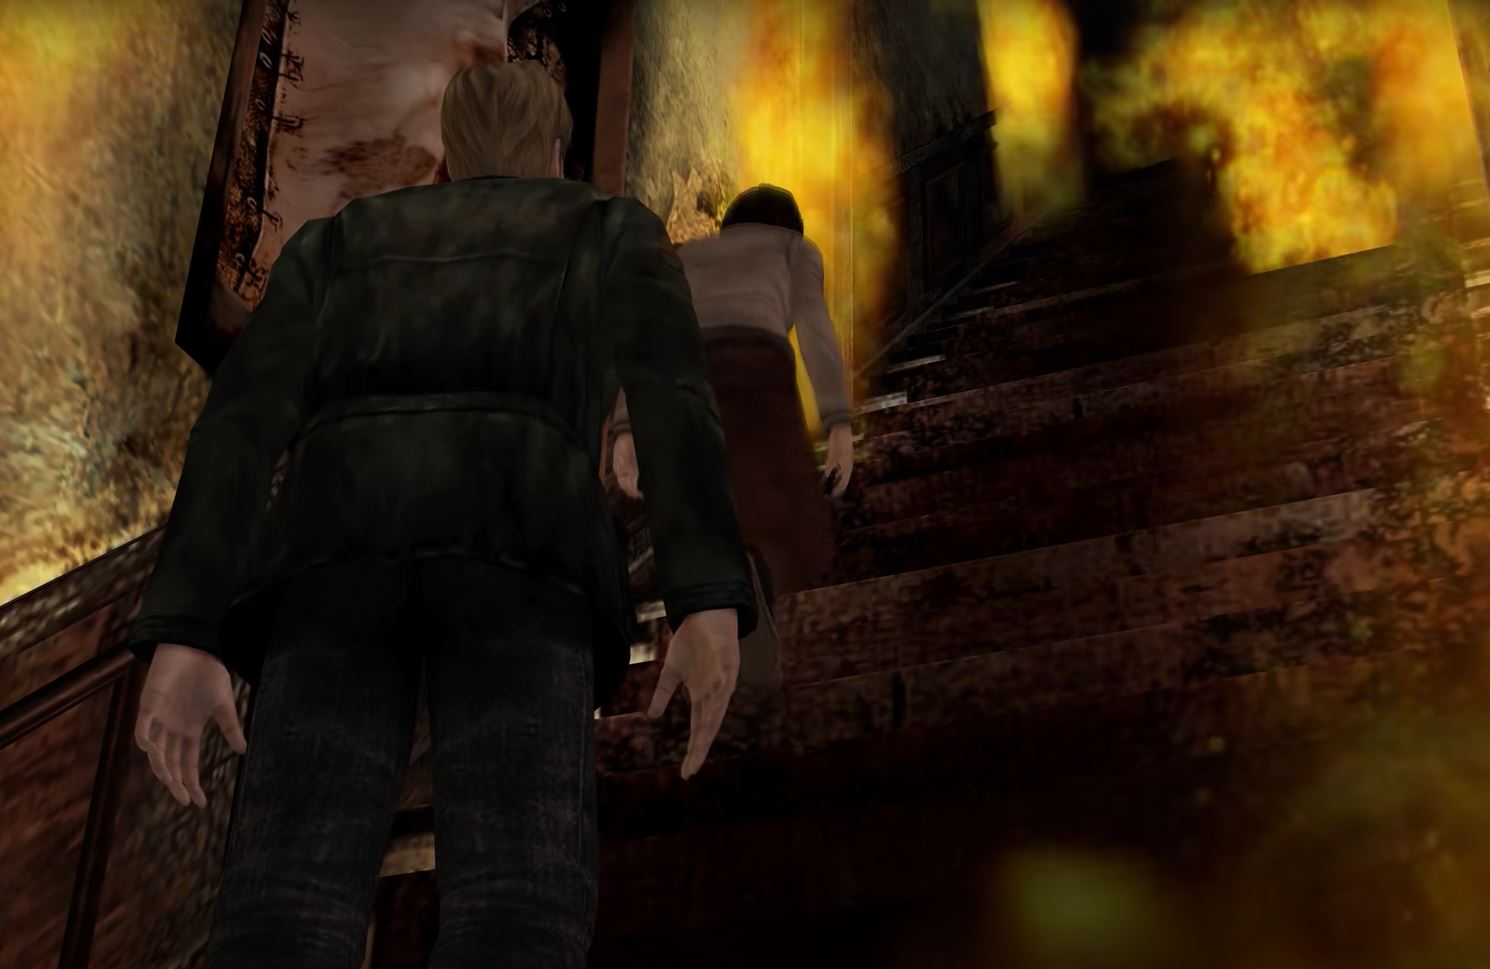 Silent Hill 2 Video Game Review Stairs Scene